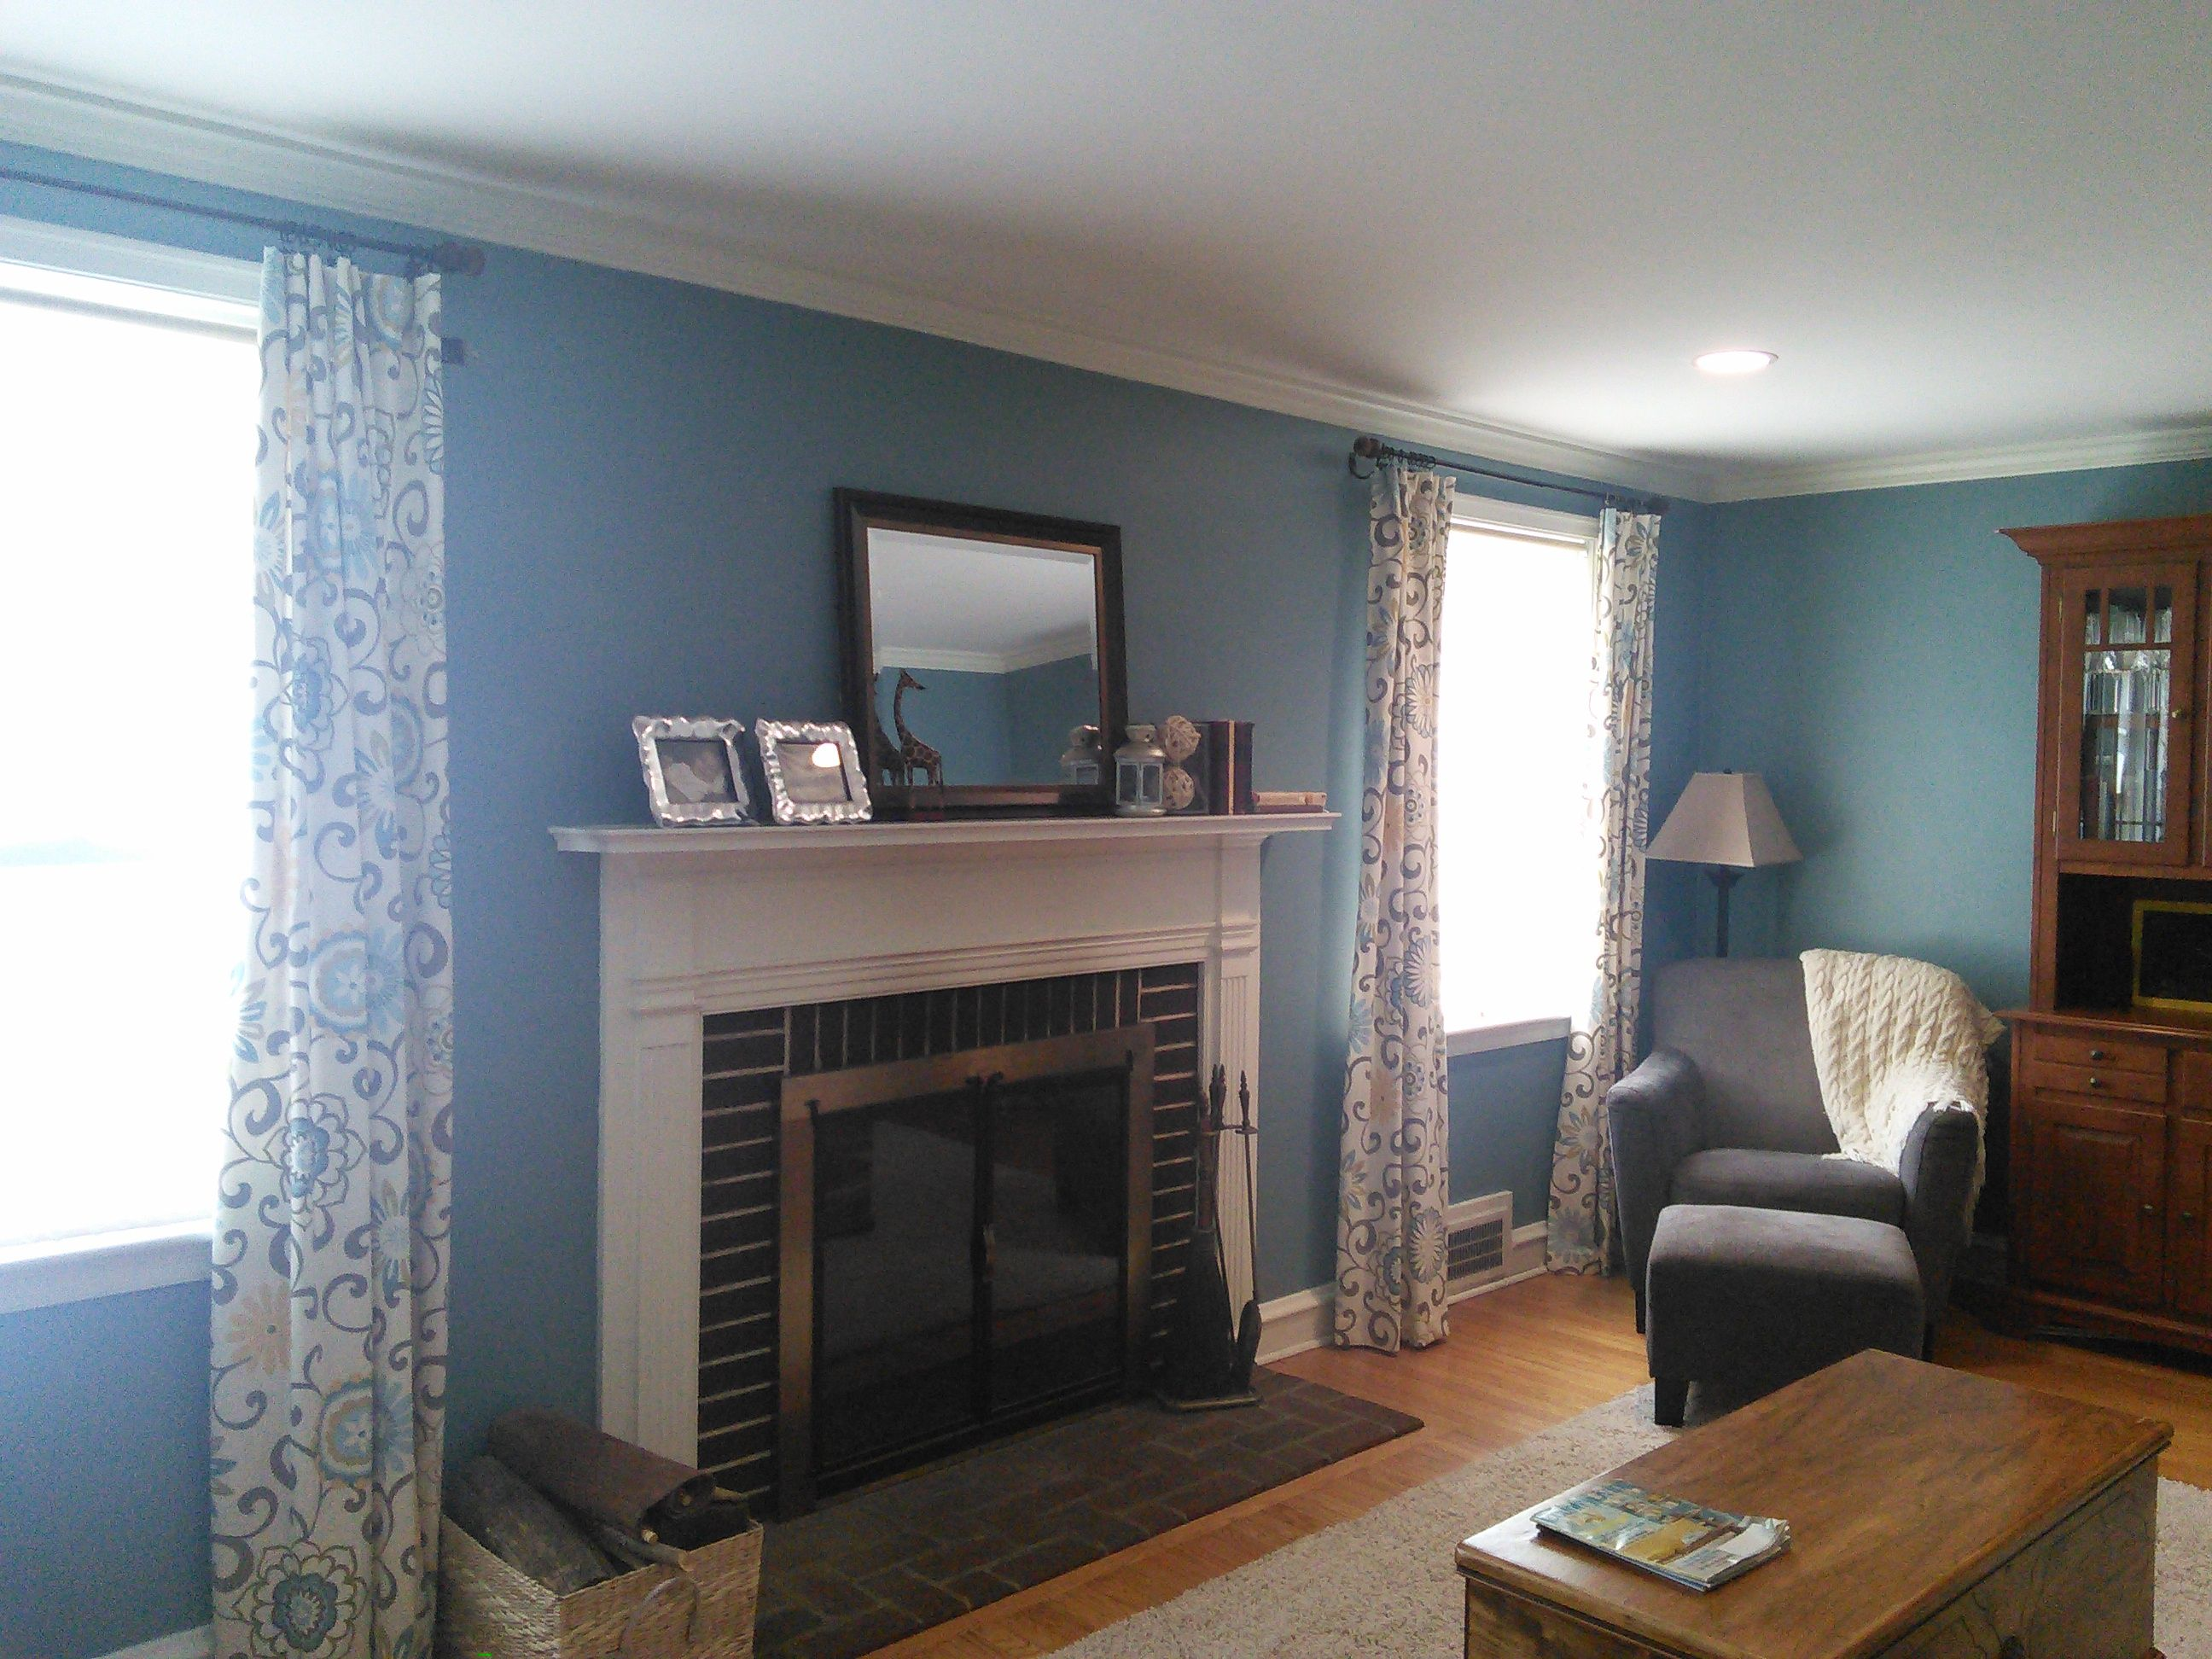 Sherwin Williams tranquil aqua 7611 | Home | Pinterest